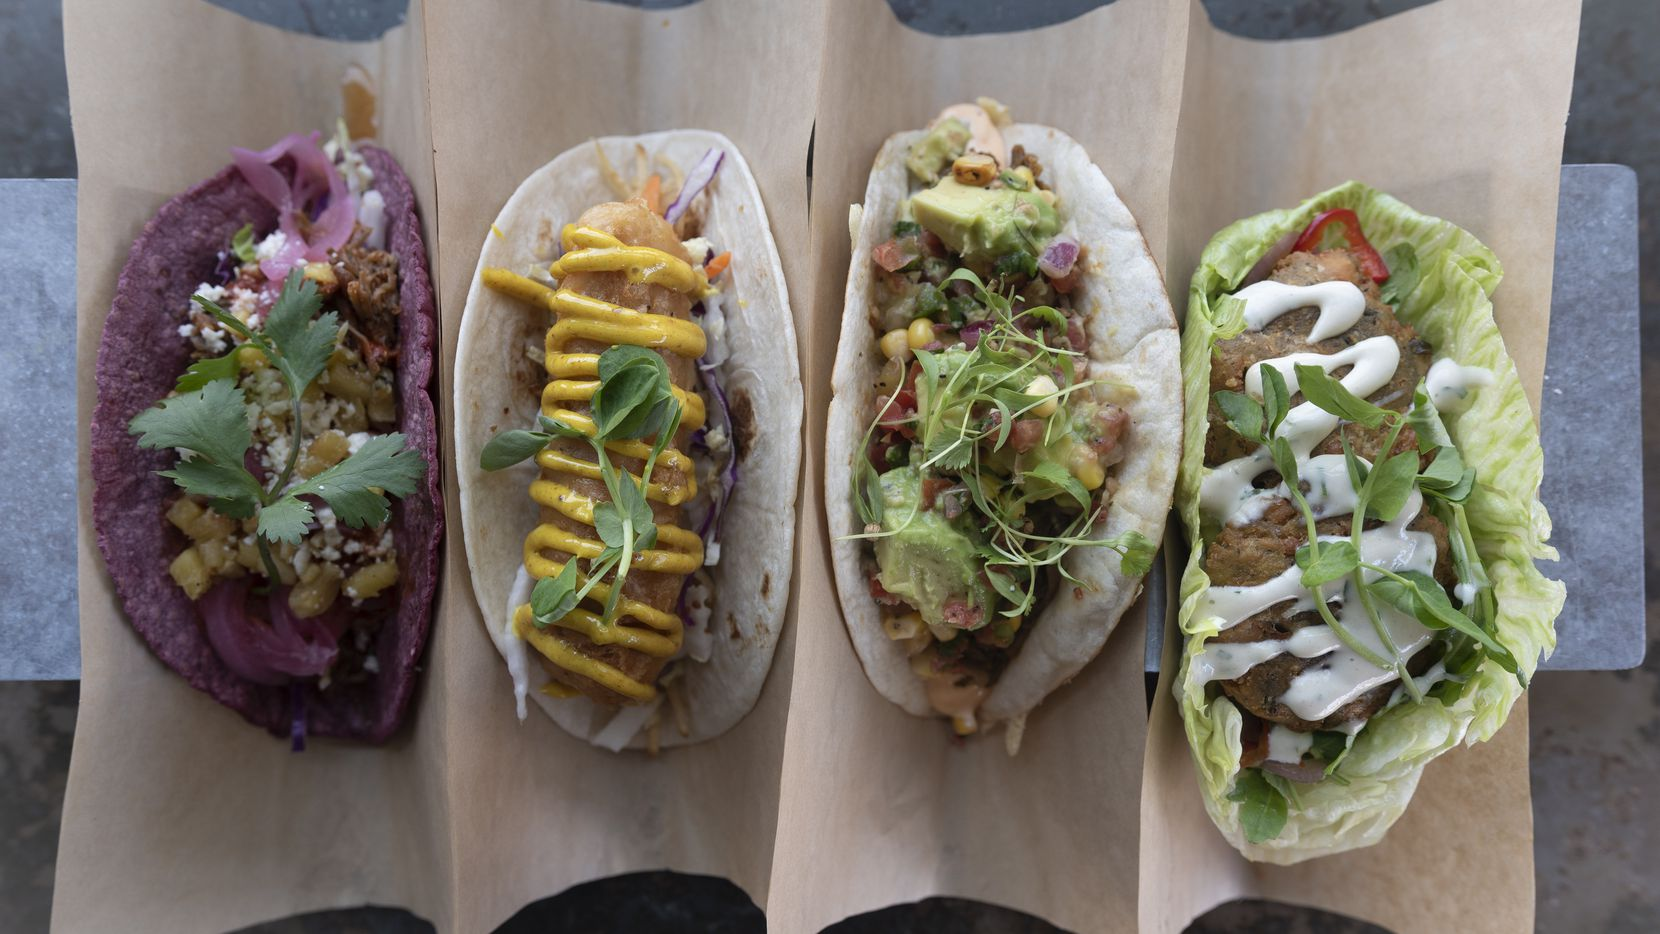 Velvet Tacos' menu items have included (from left) shredded pork; fish n' chips; brisket; and falafel. The menu often changes; these tacos were photographed in August 2018.